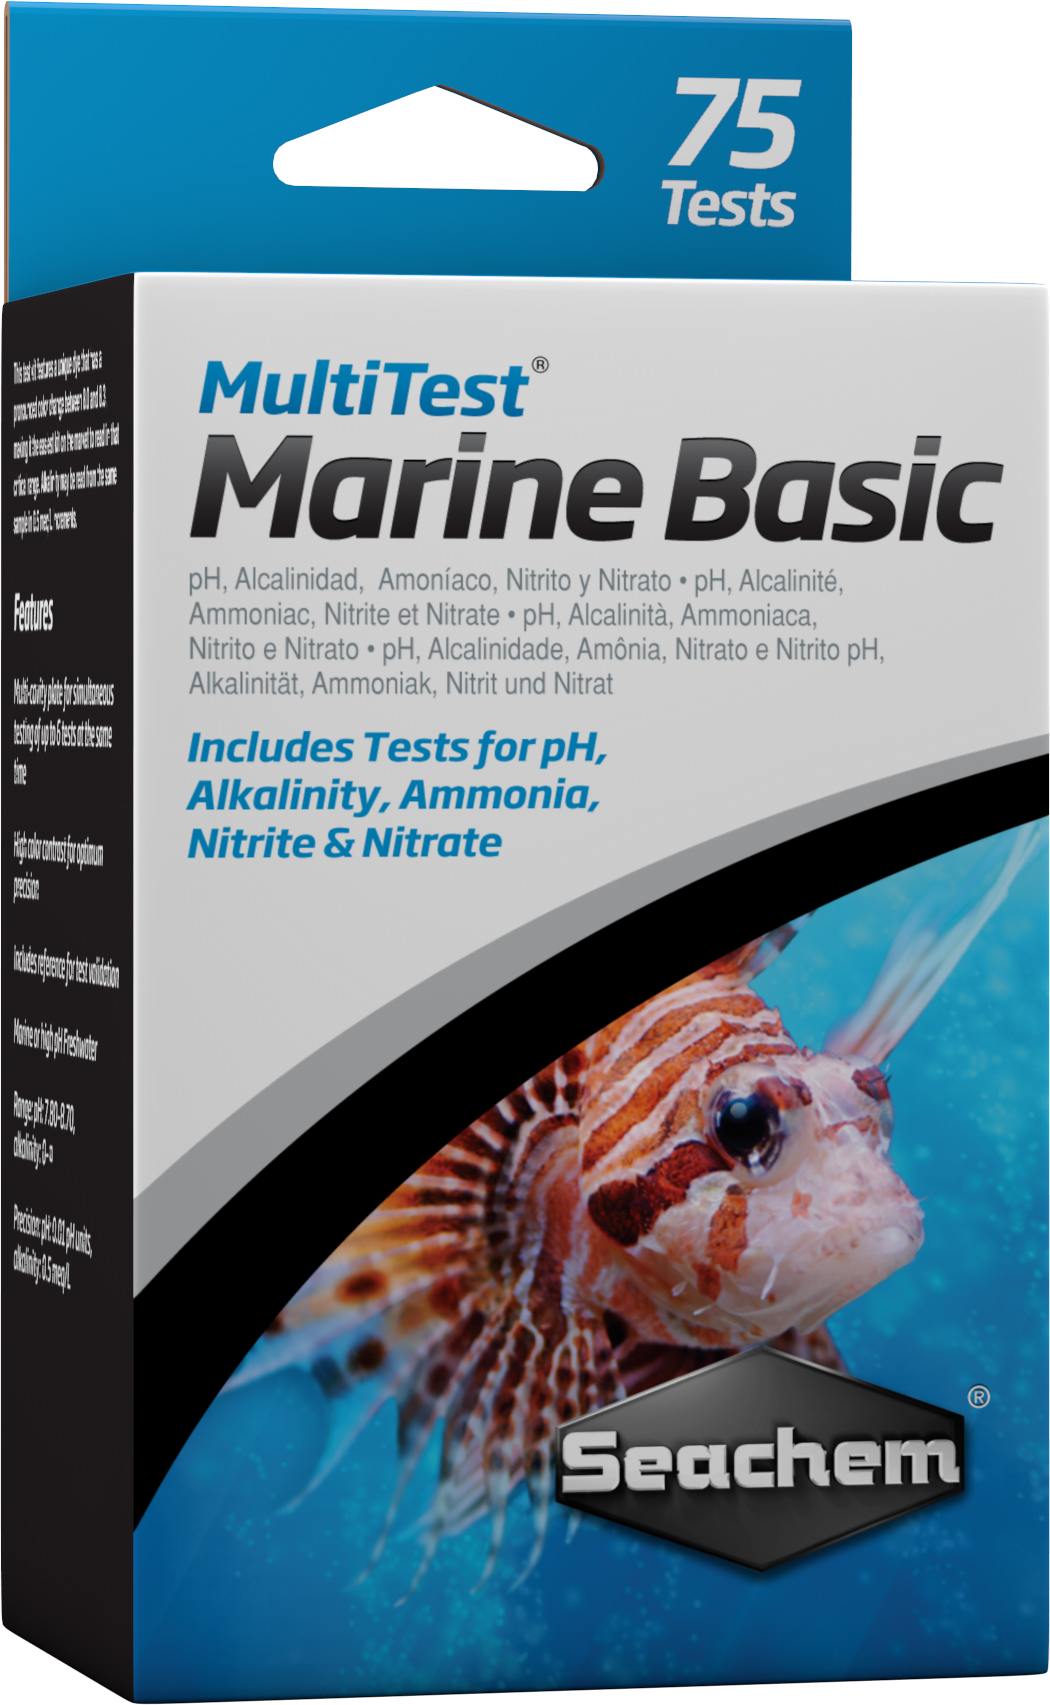 SEACHEM MultiTest Marine Basic pour le test précis du taux de pH, KH, NO2 et NO3 en aquarium d\'eau de mer. 75 tests possibles